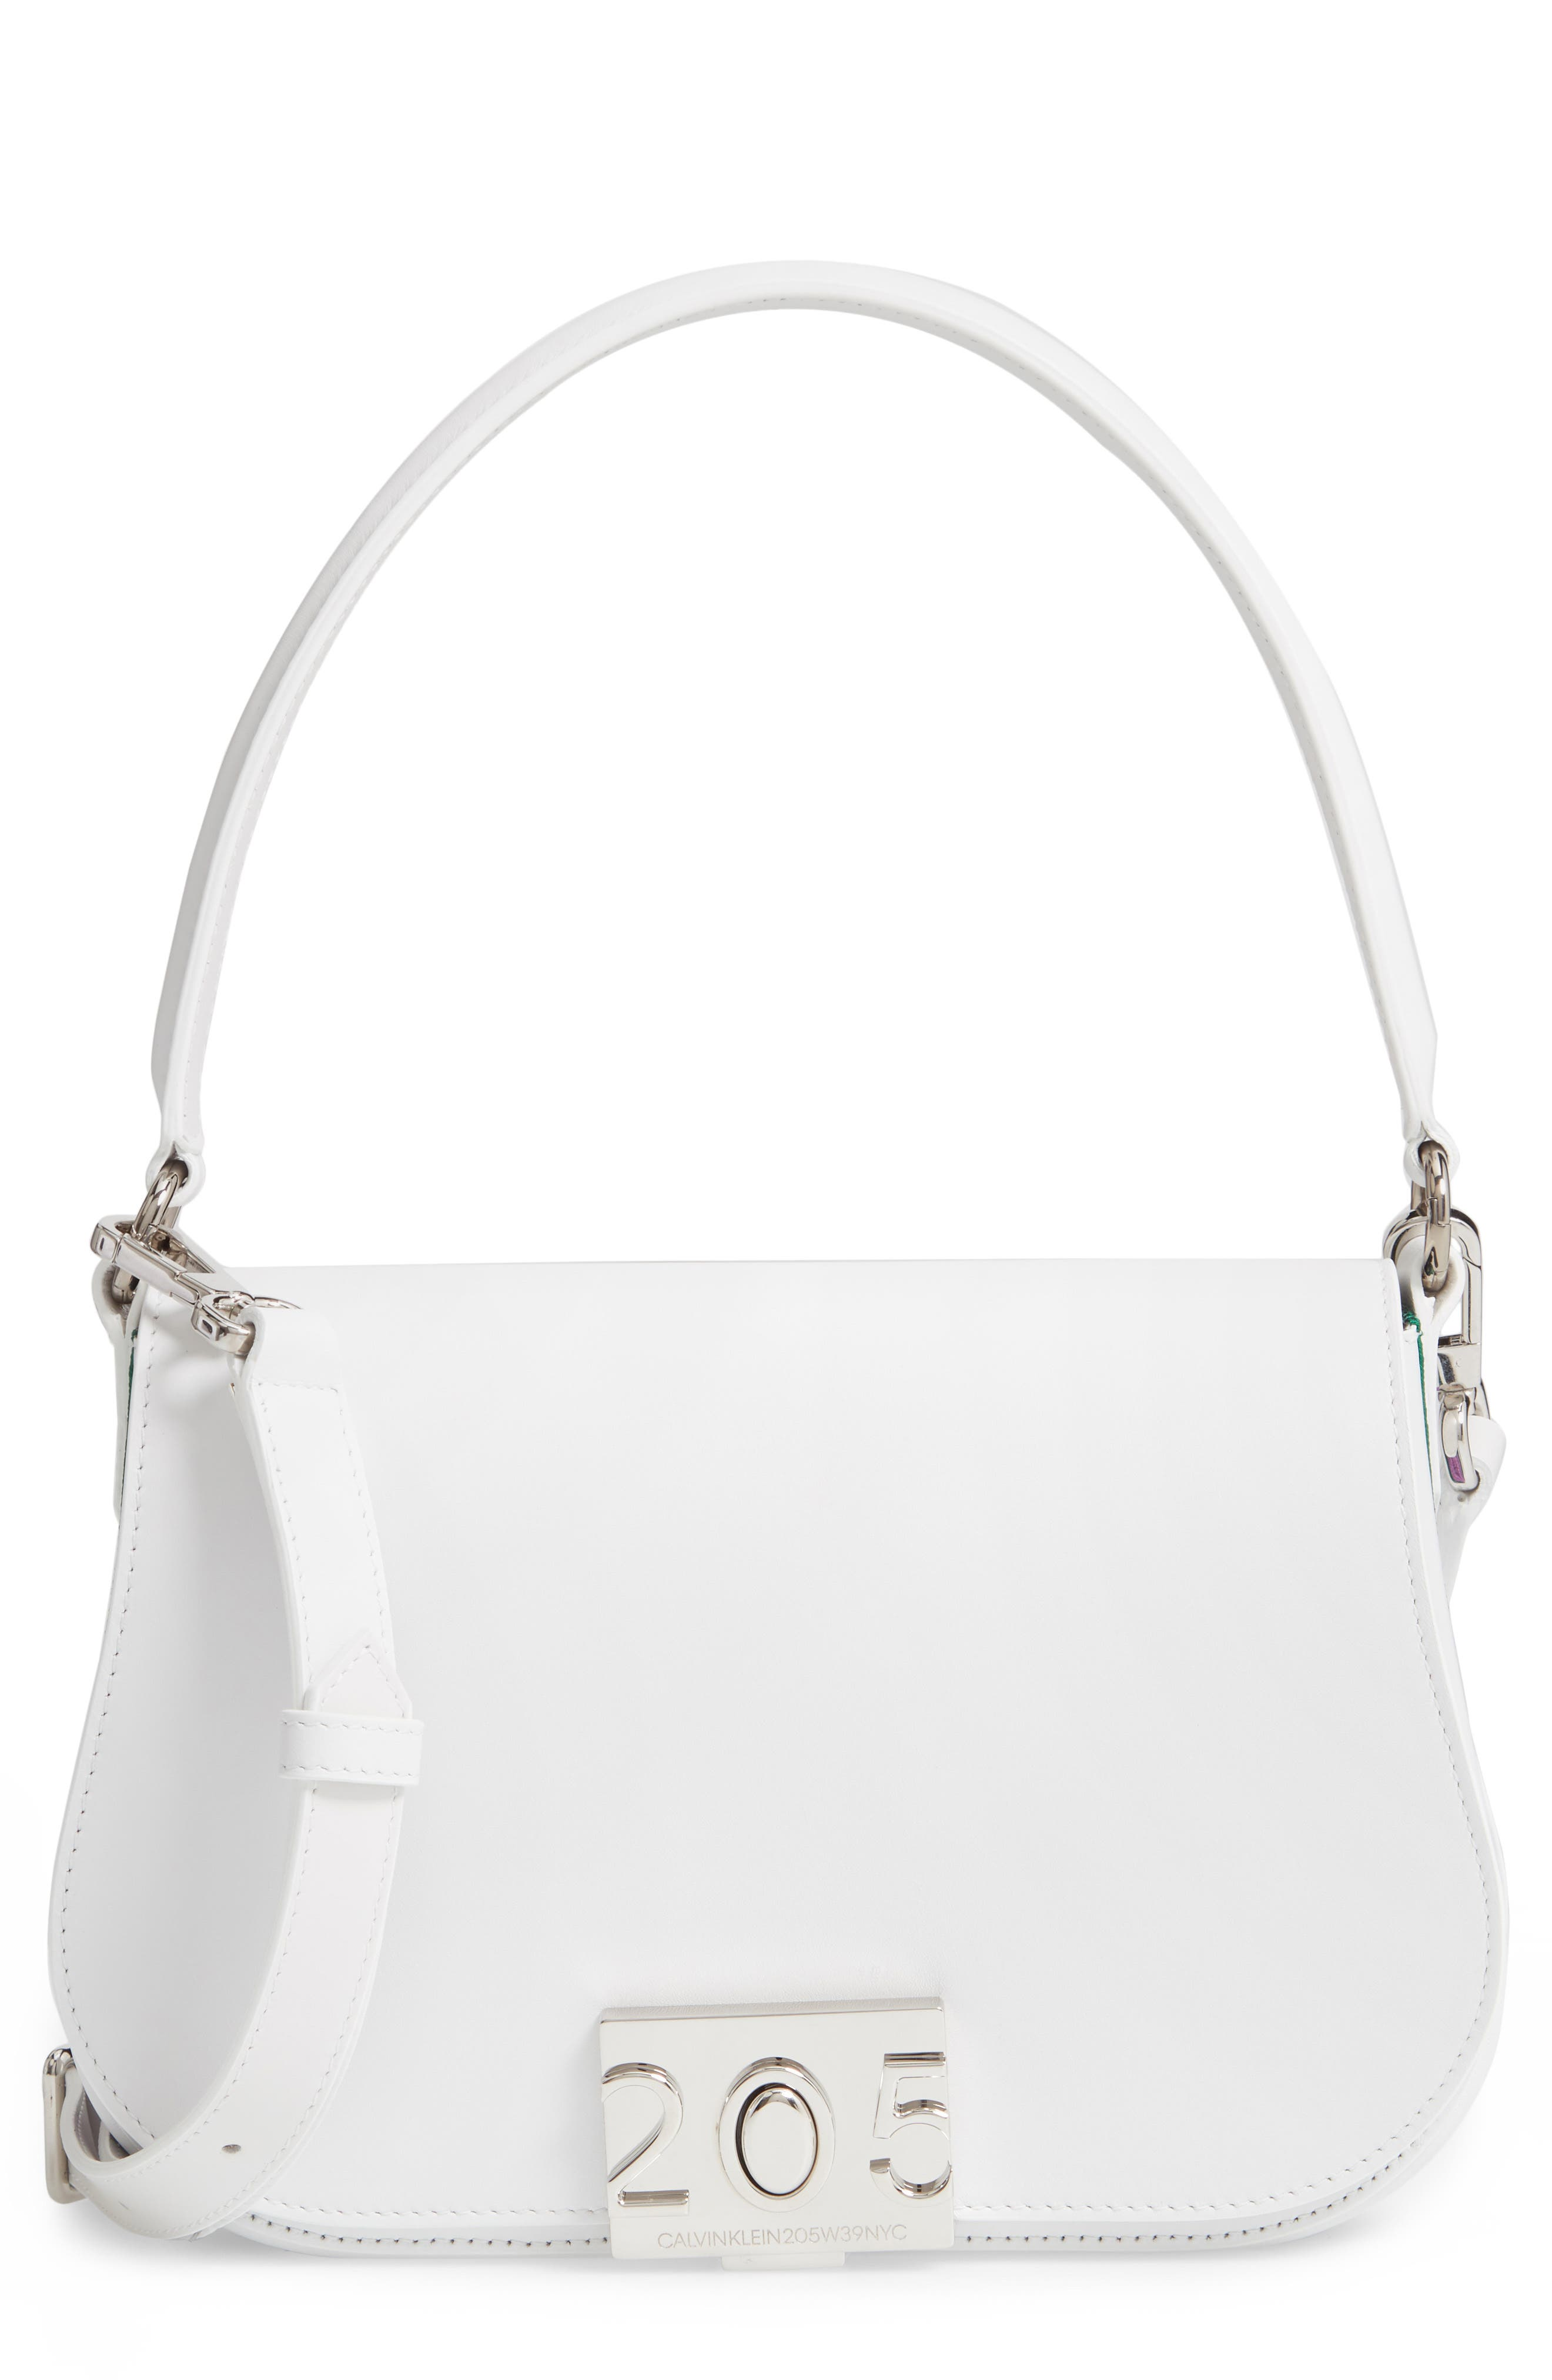 CALVIN KLEIN 205W39NYC Bonnie Leather Shoulder Bag, Main, color, OPTIC WHITE